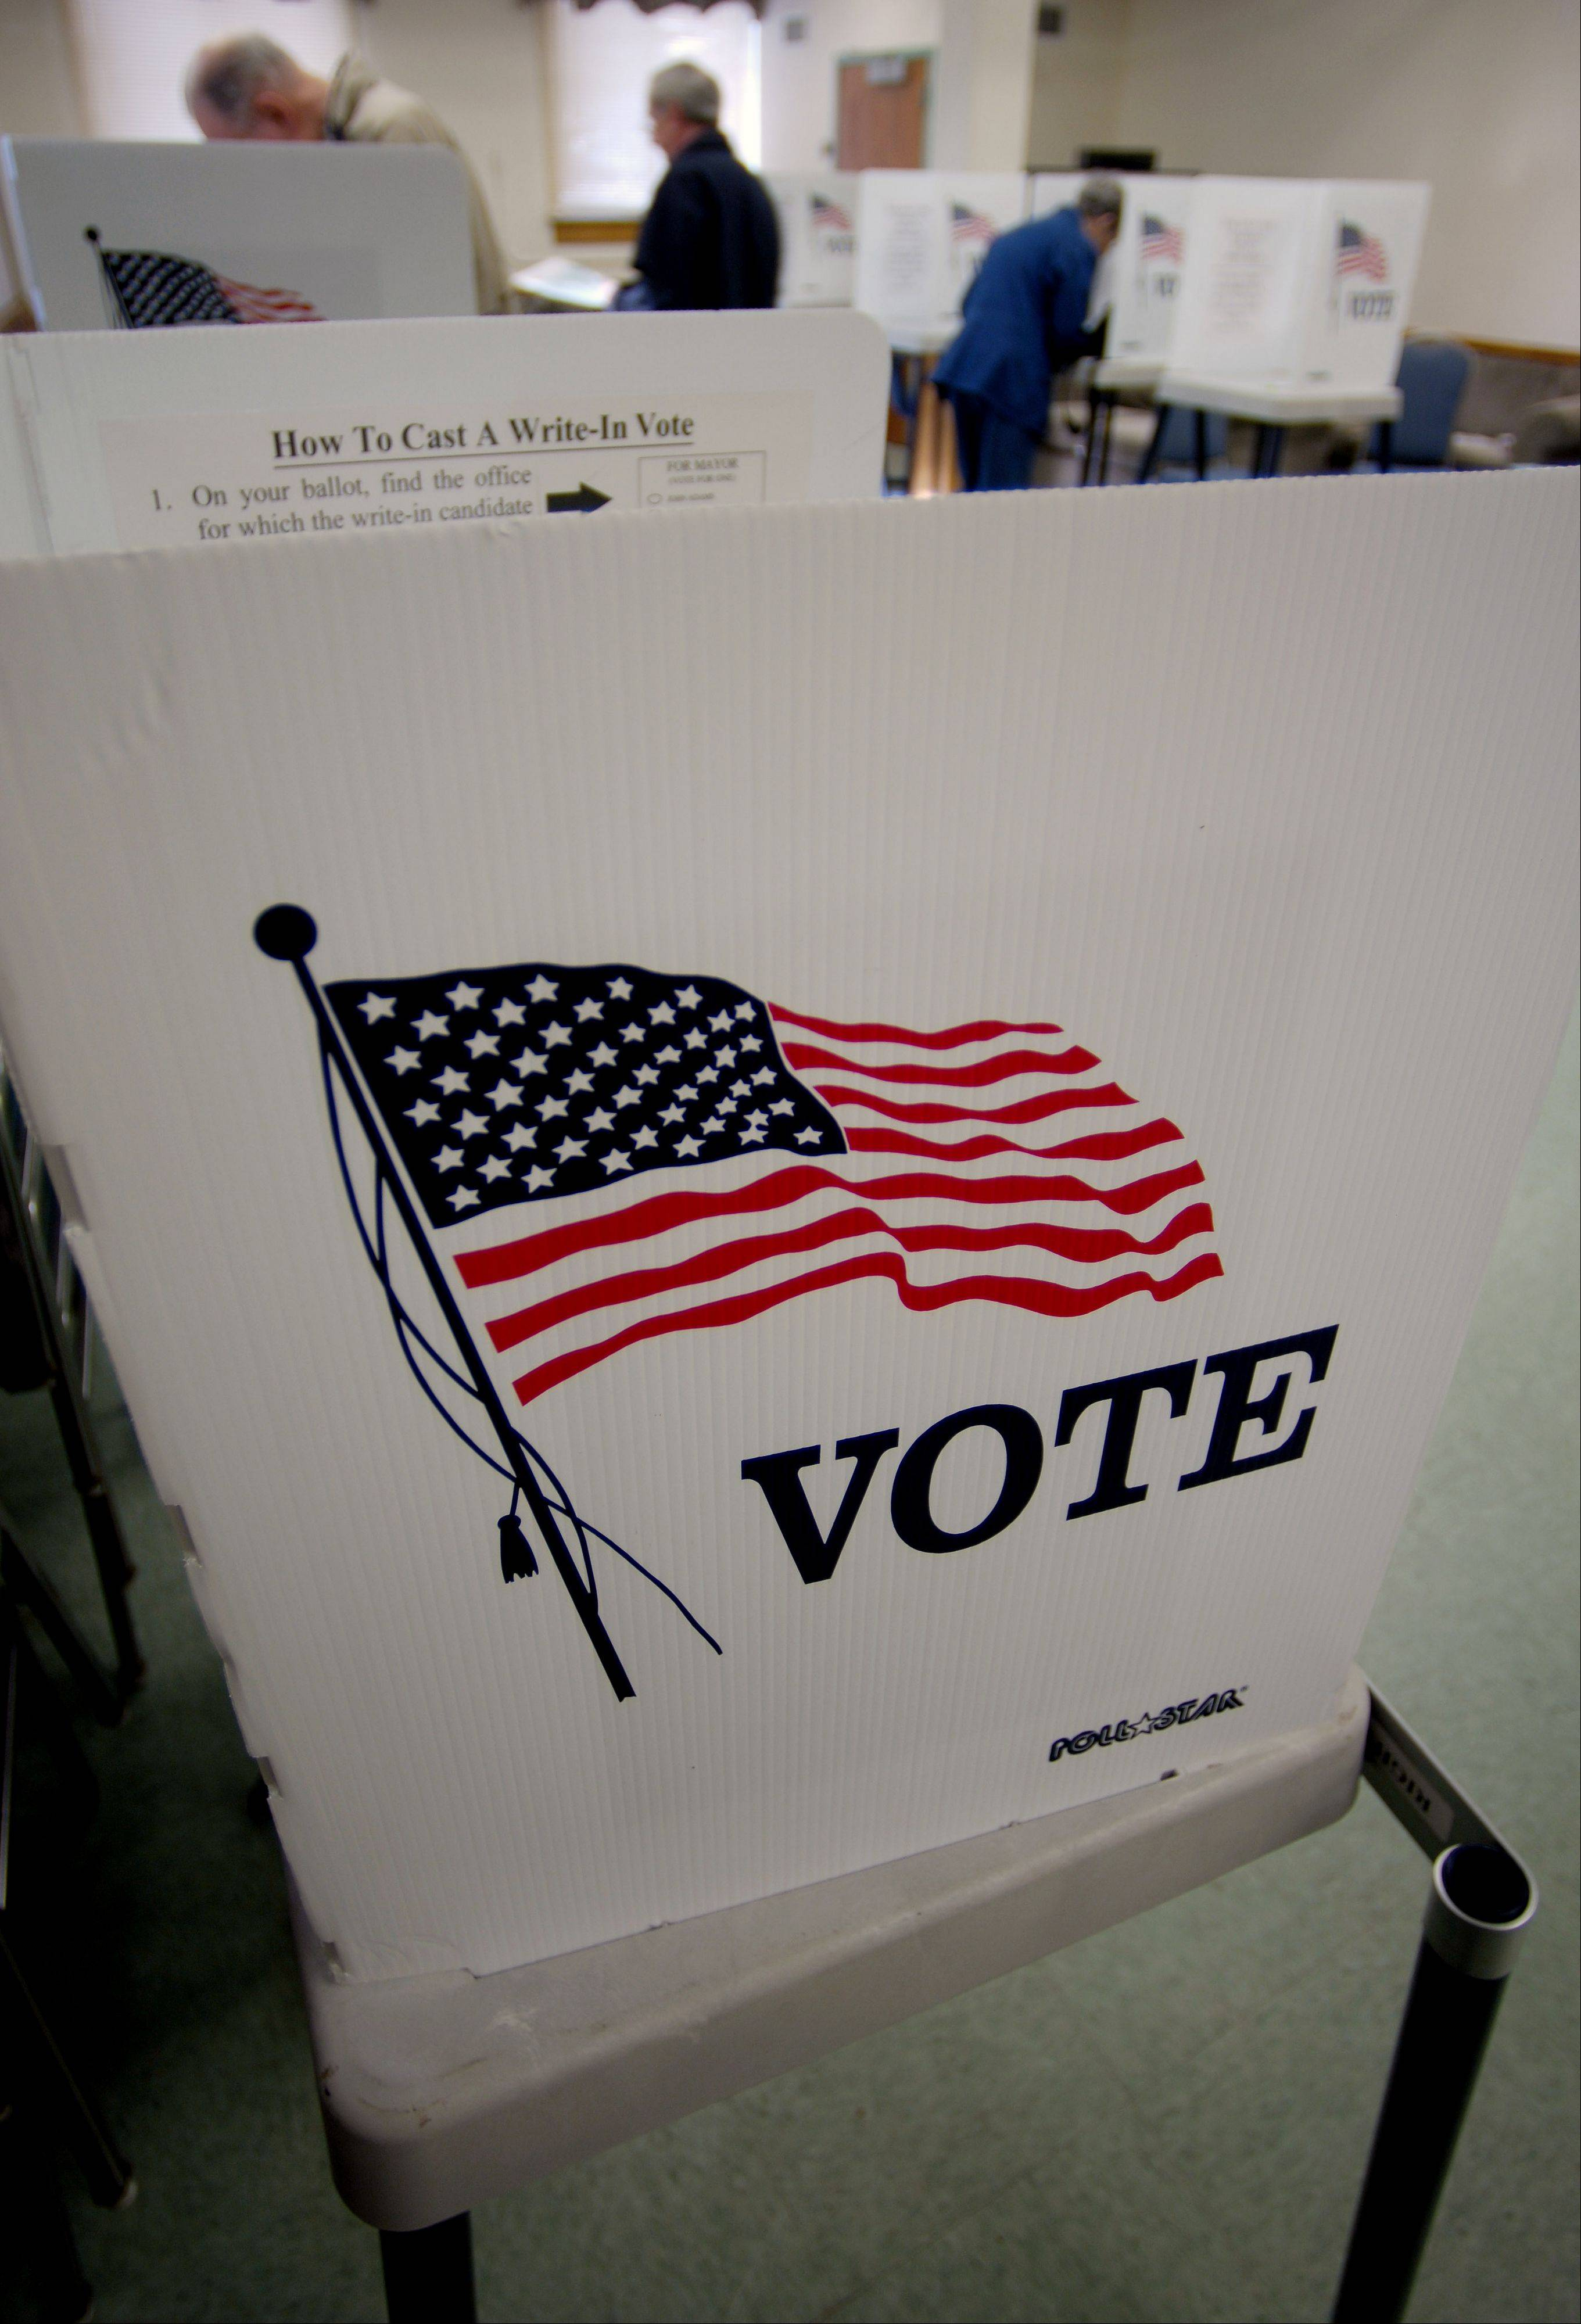 Early voting for the March 20 primaries starts across the suburbs today and runs through March 15.